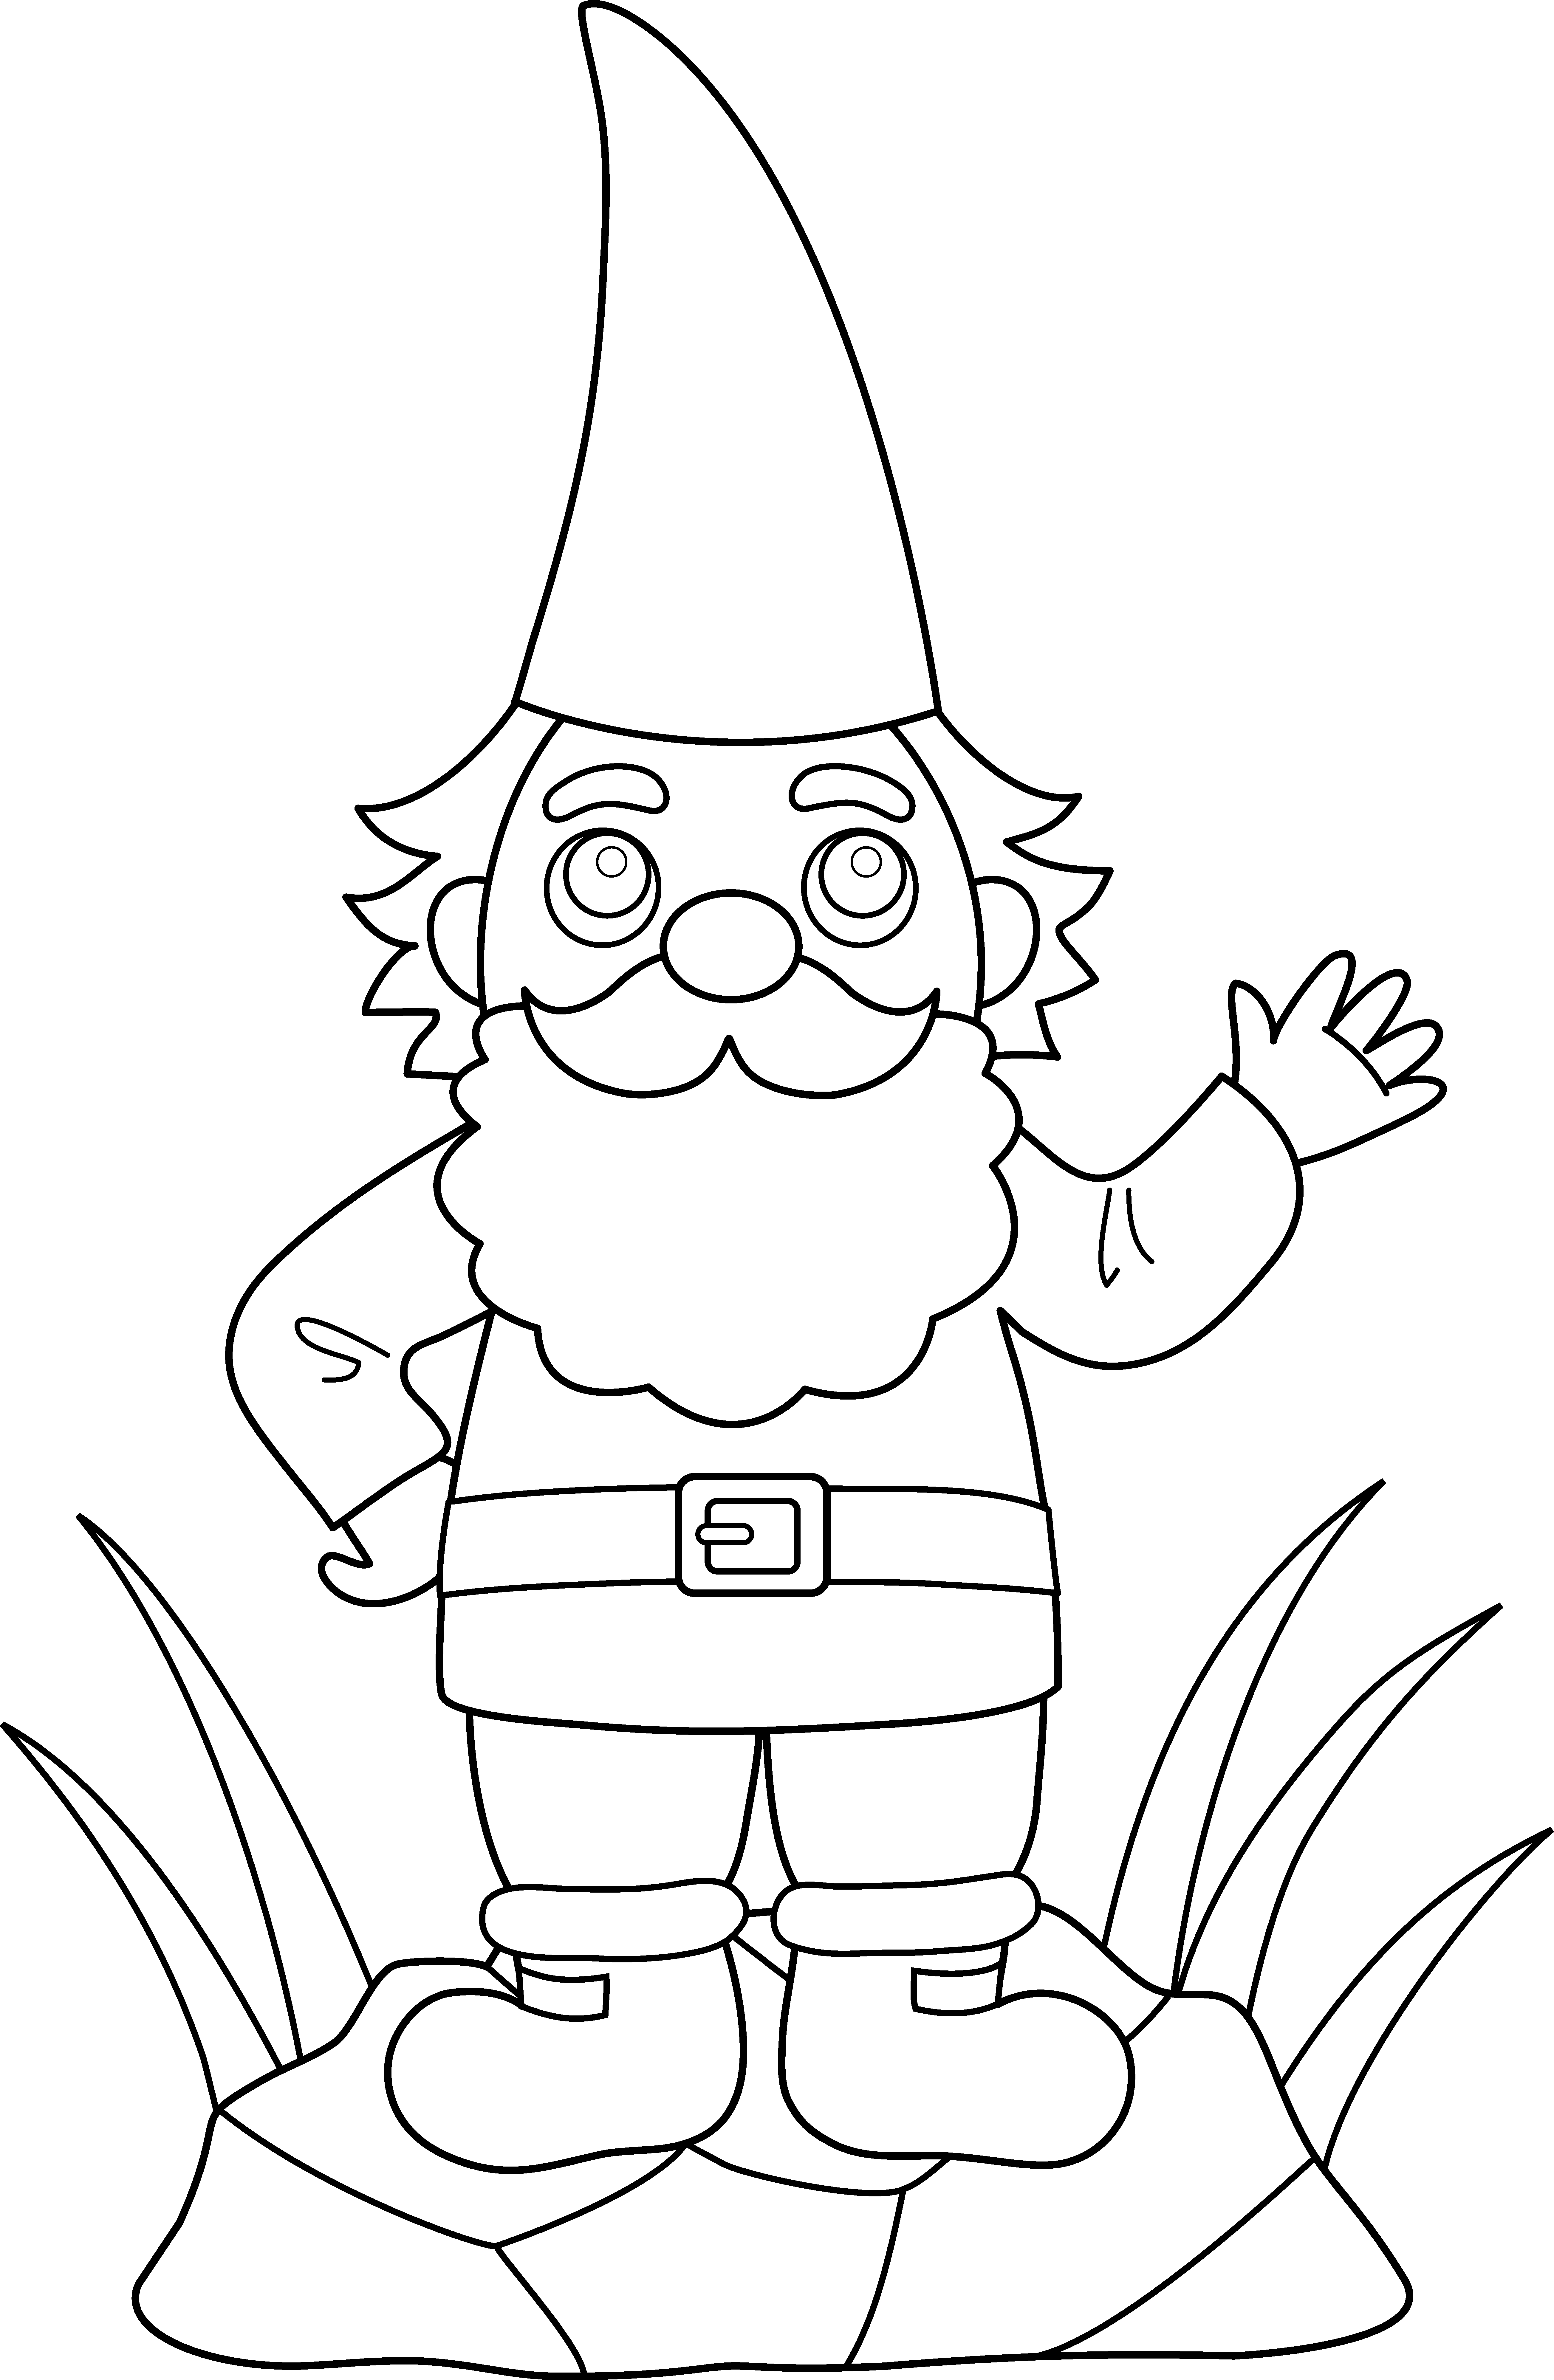 Christmas eve clipart black and white svg Garden gnome clipart black and white svg